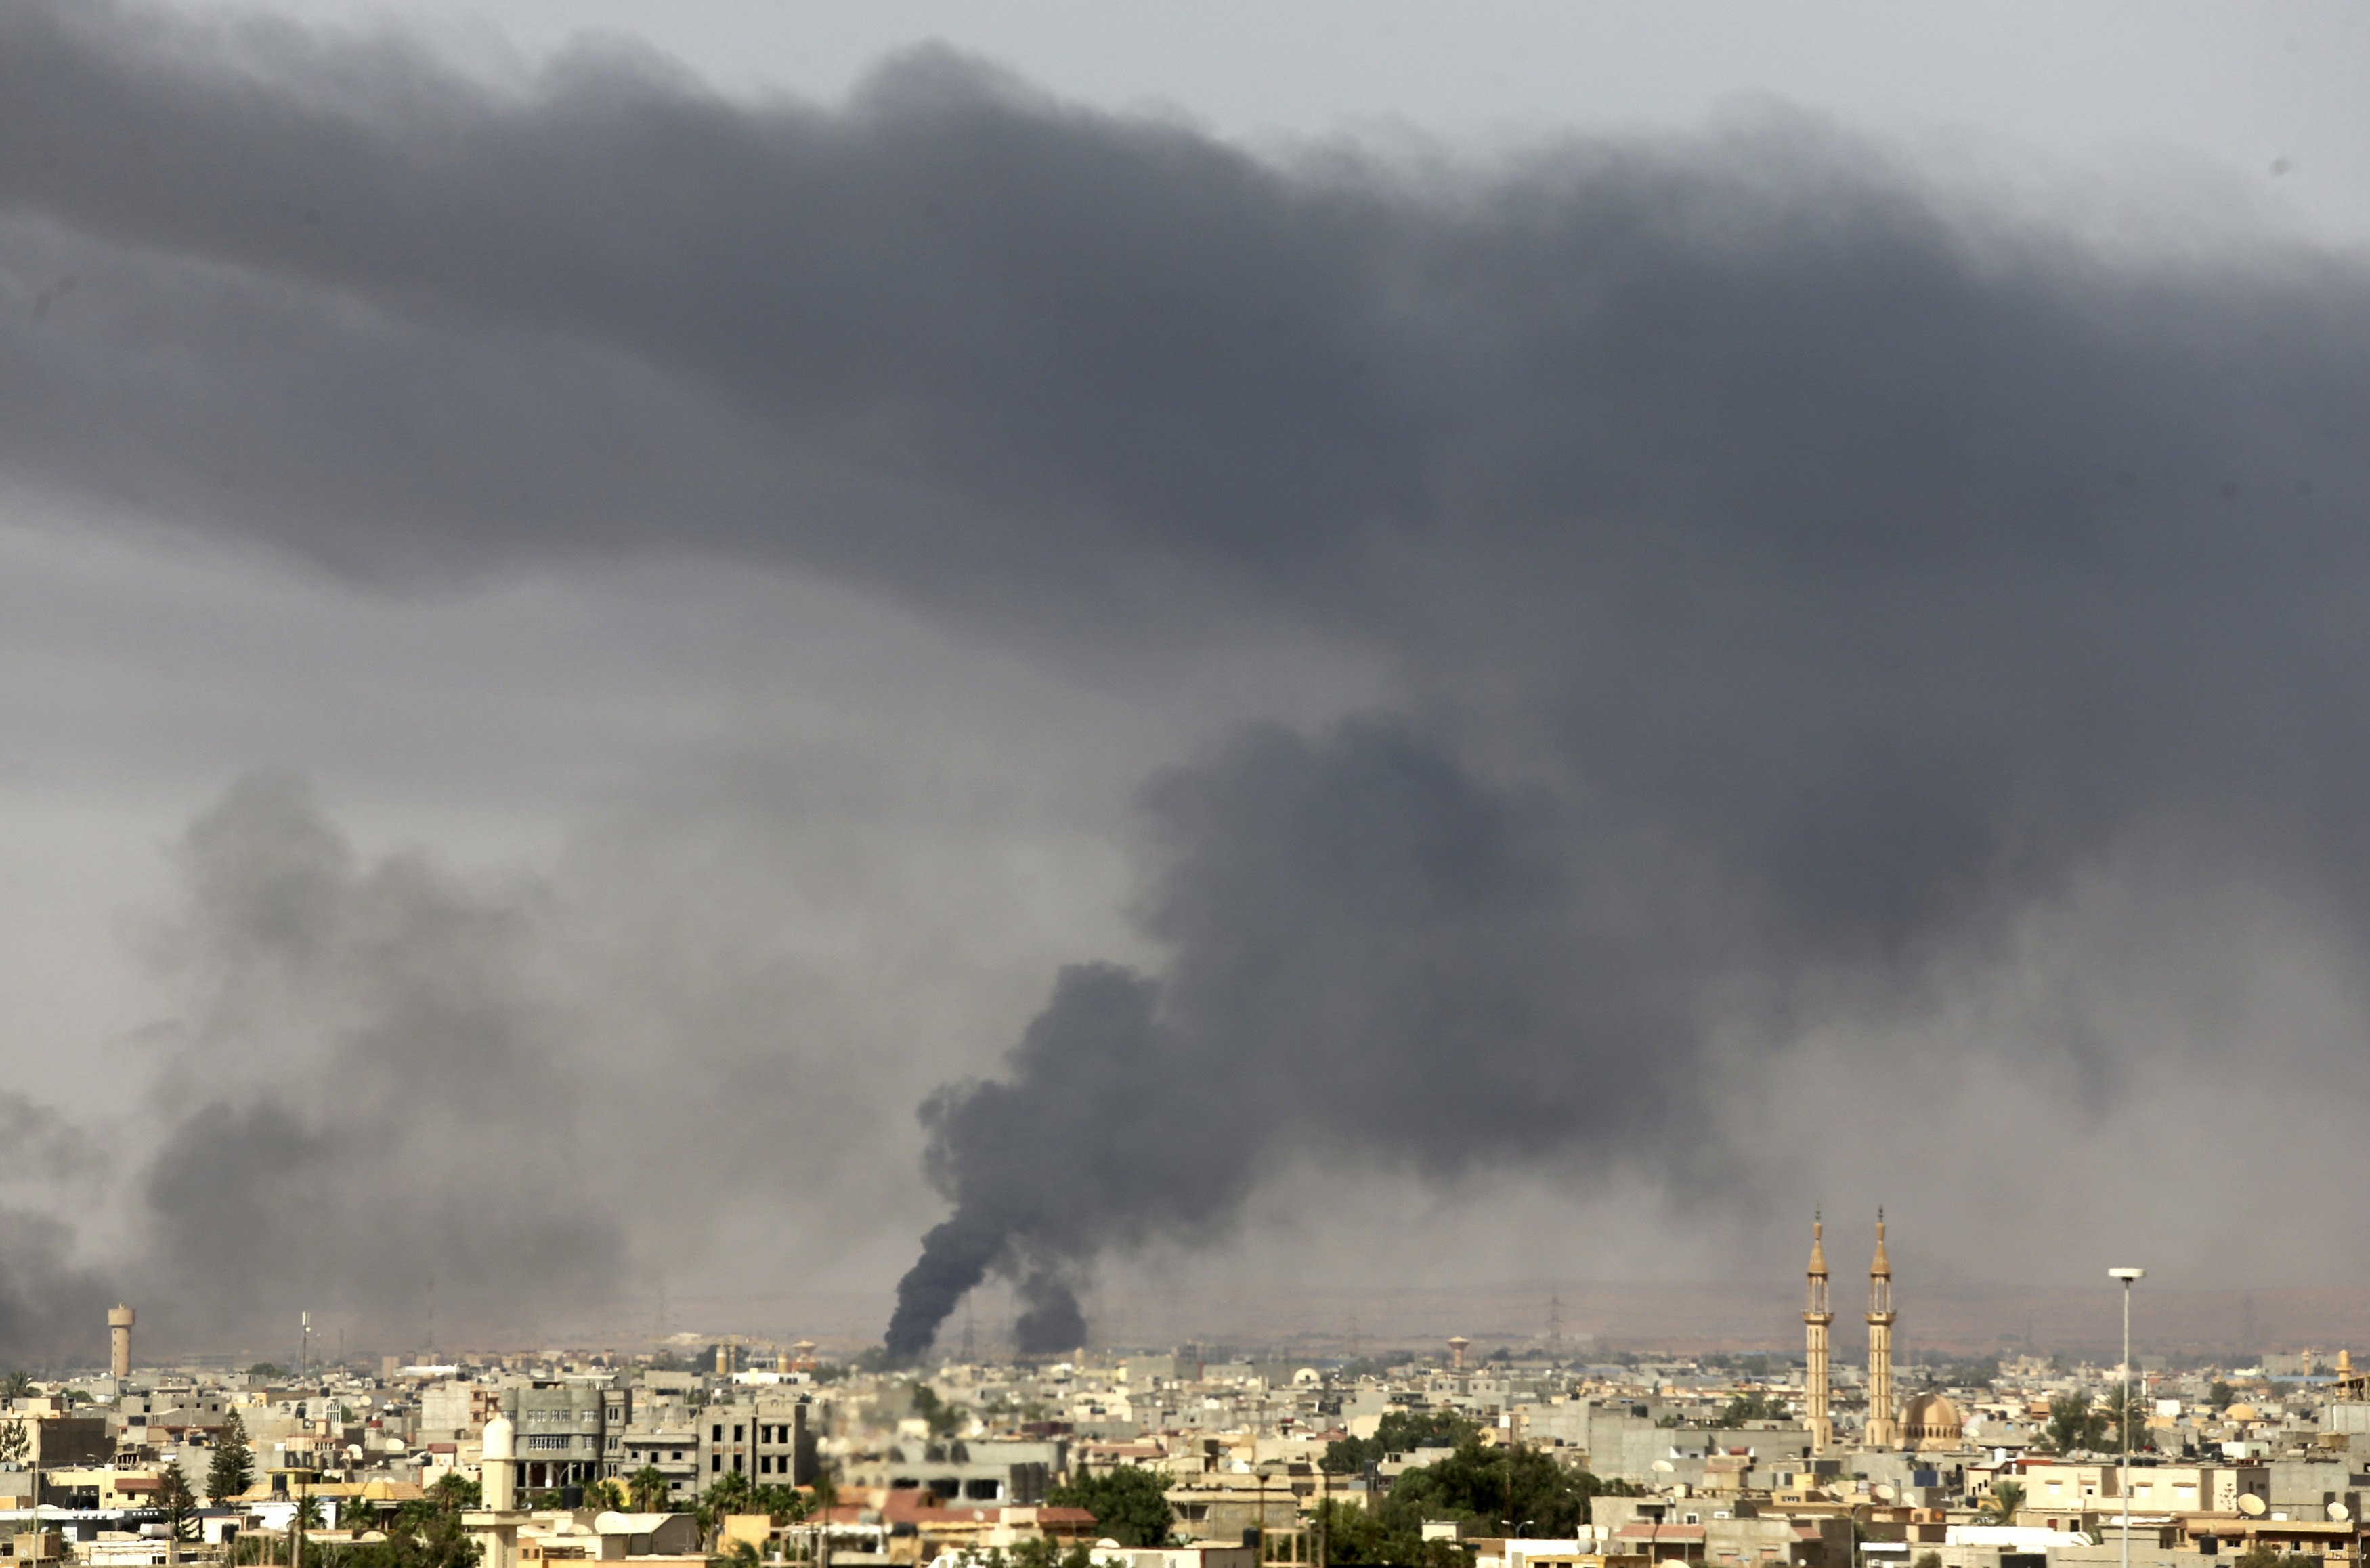 At Least 30 People Killed in Libya's Benghazi in Heavy Fighting